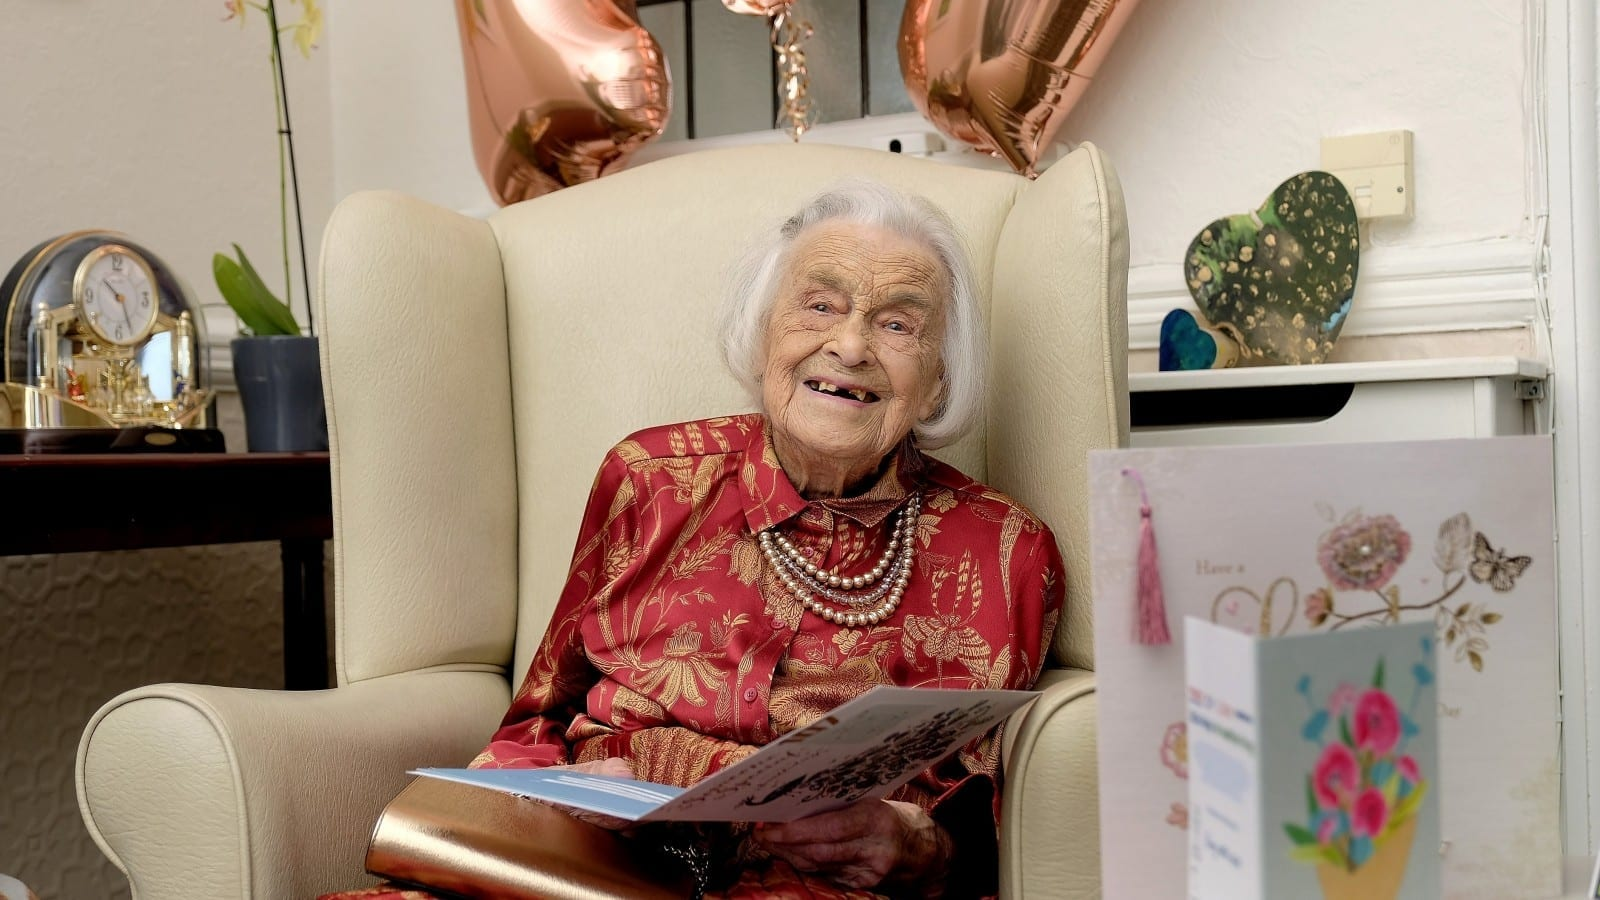 A Sprightly Spinster Who Has Celebrated Her 107th Birthday Has Revealed The Secret To Her Longevity - Staying Single